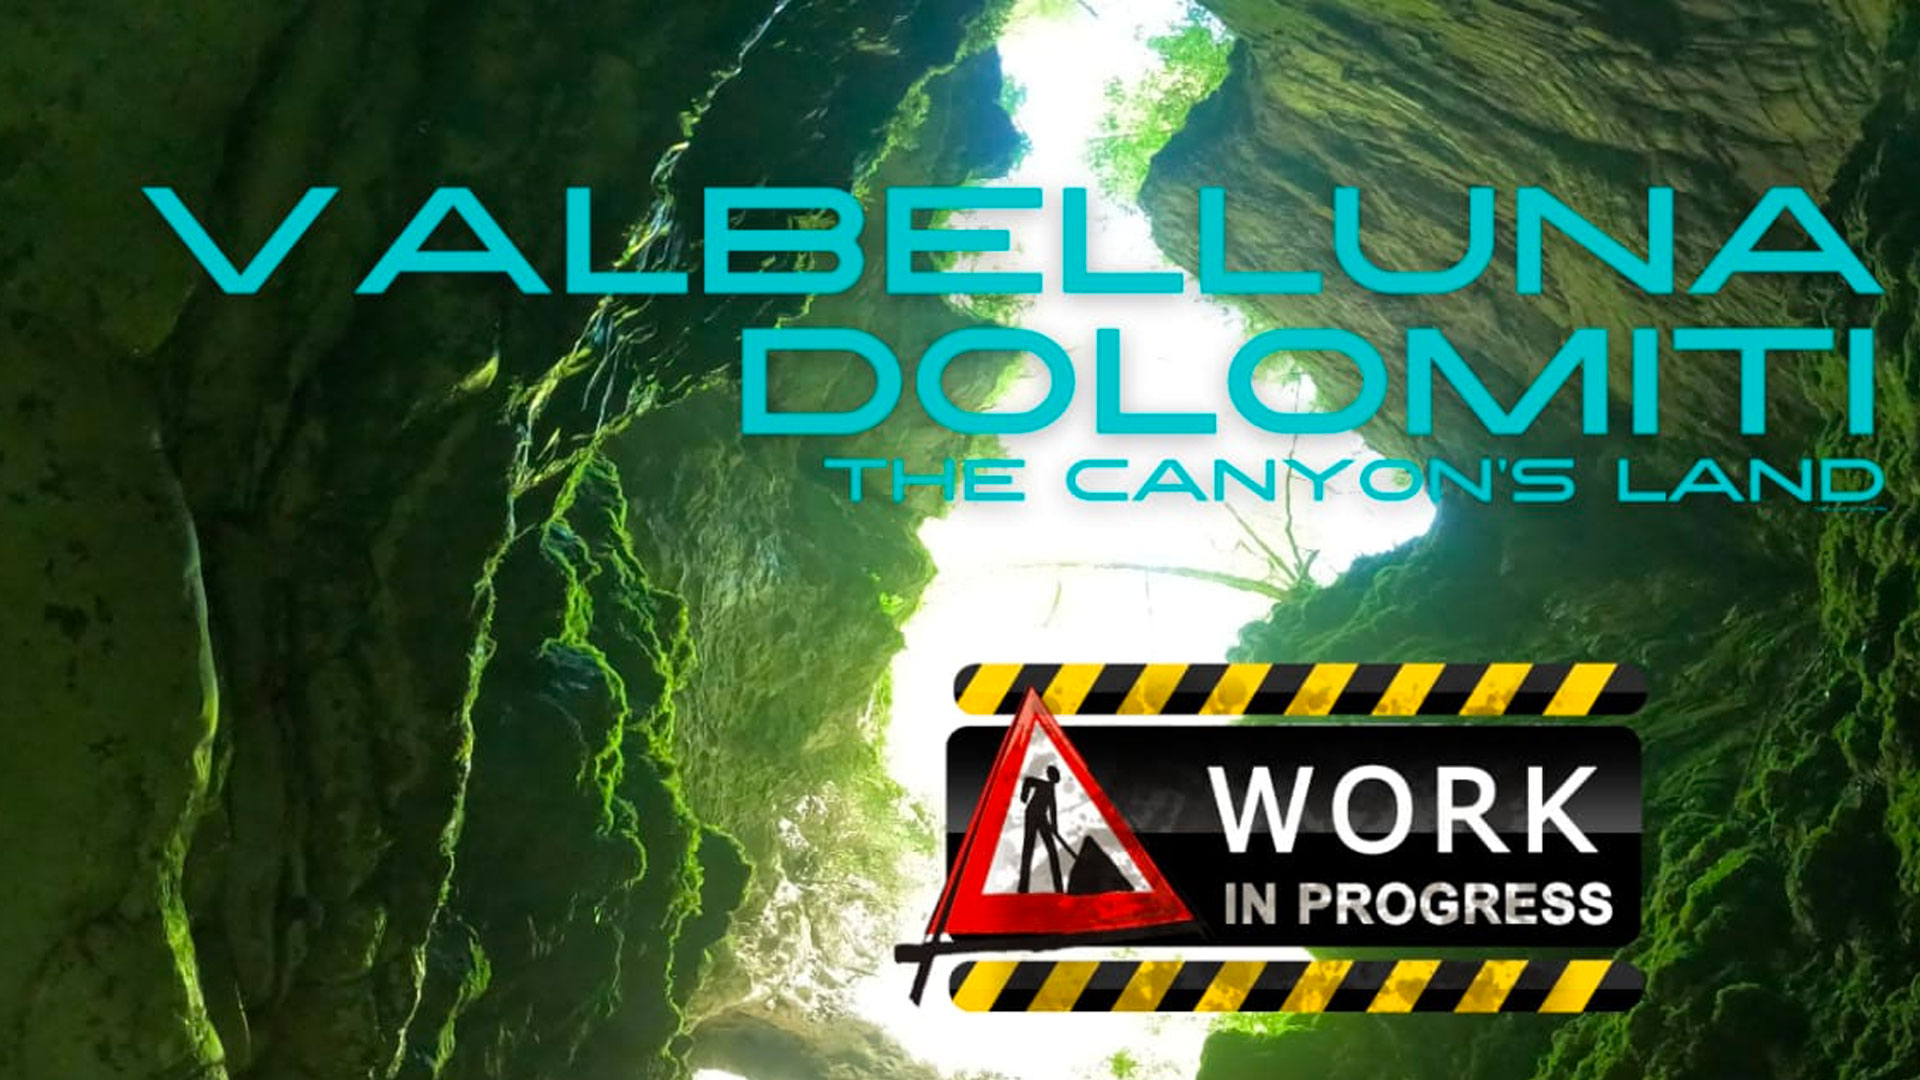 Banner for the canyoning meeting in Dolomiti